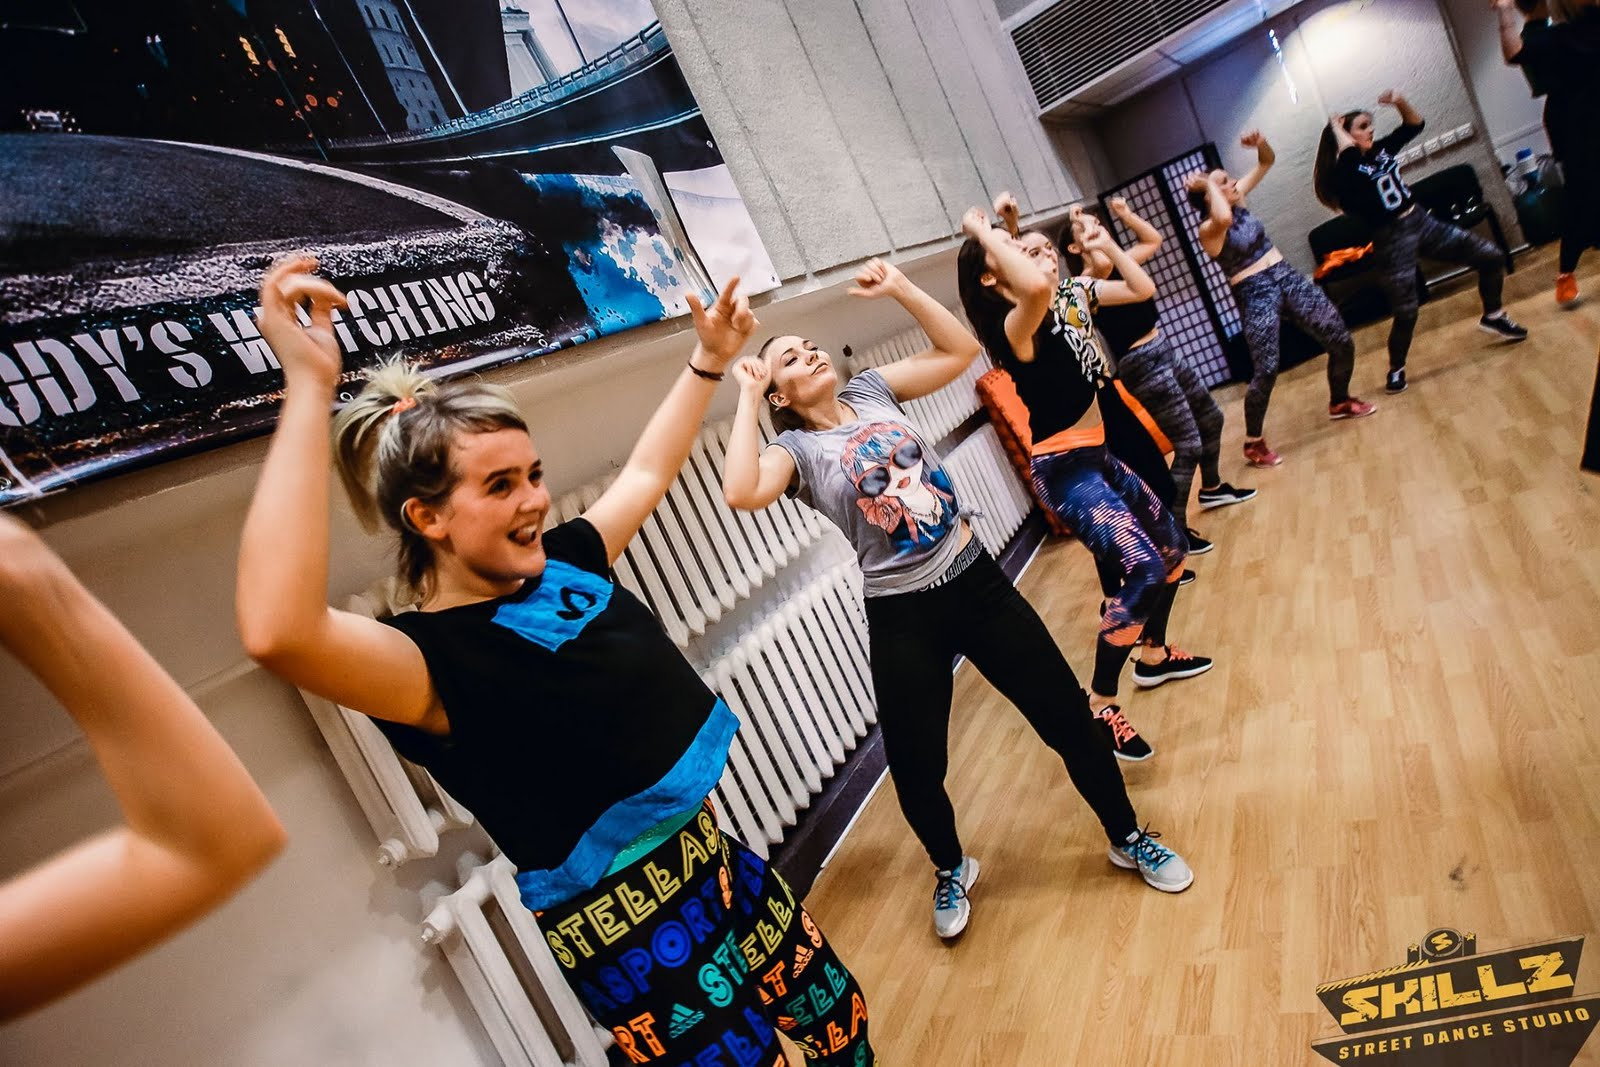 Dancehall workshop with Jiggy (France) - 46.jpg